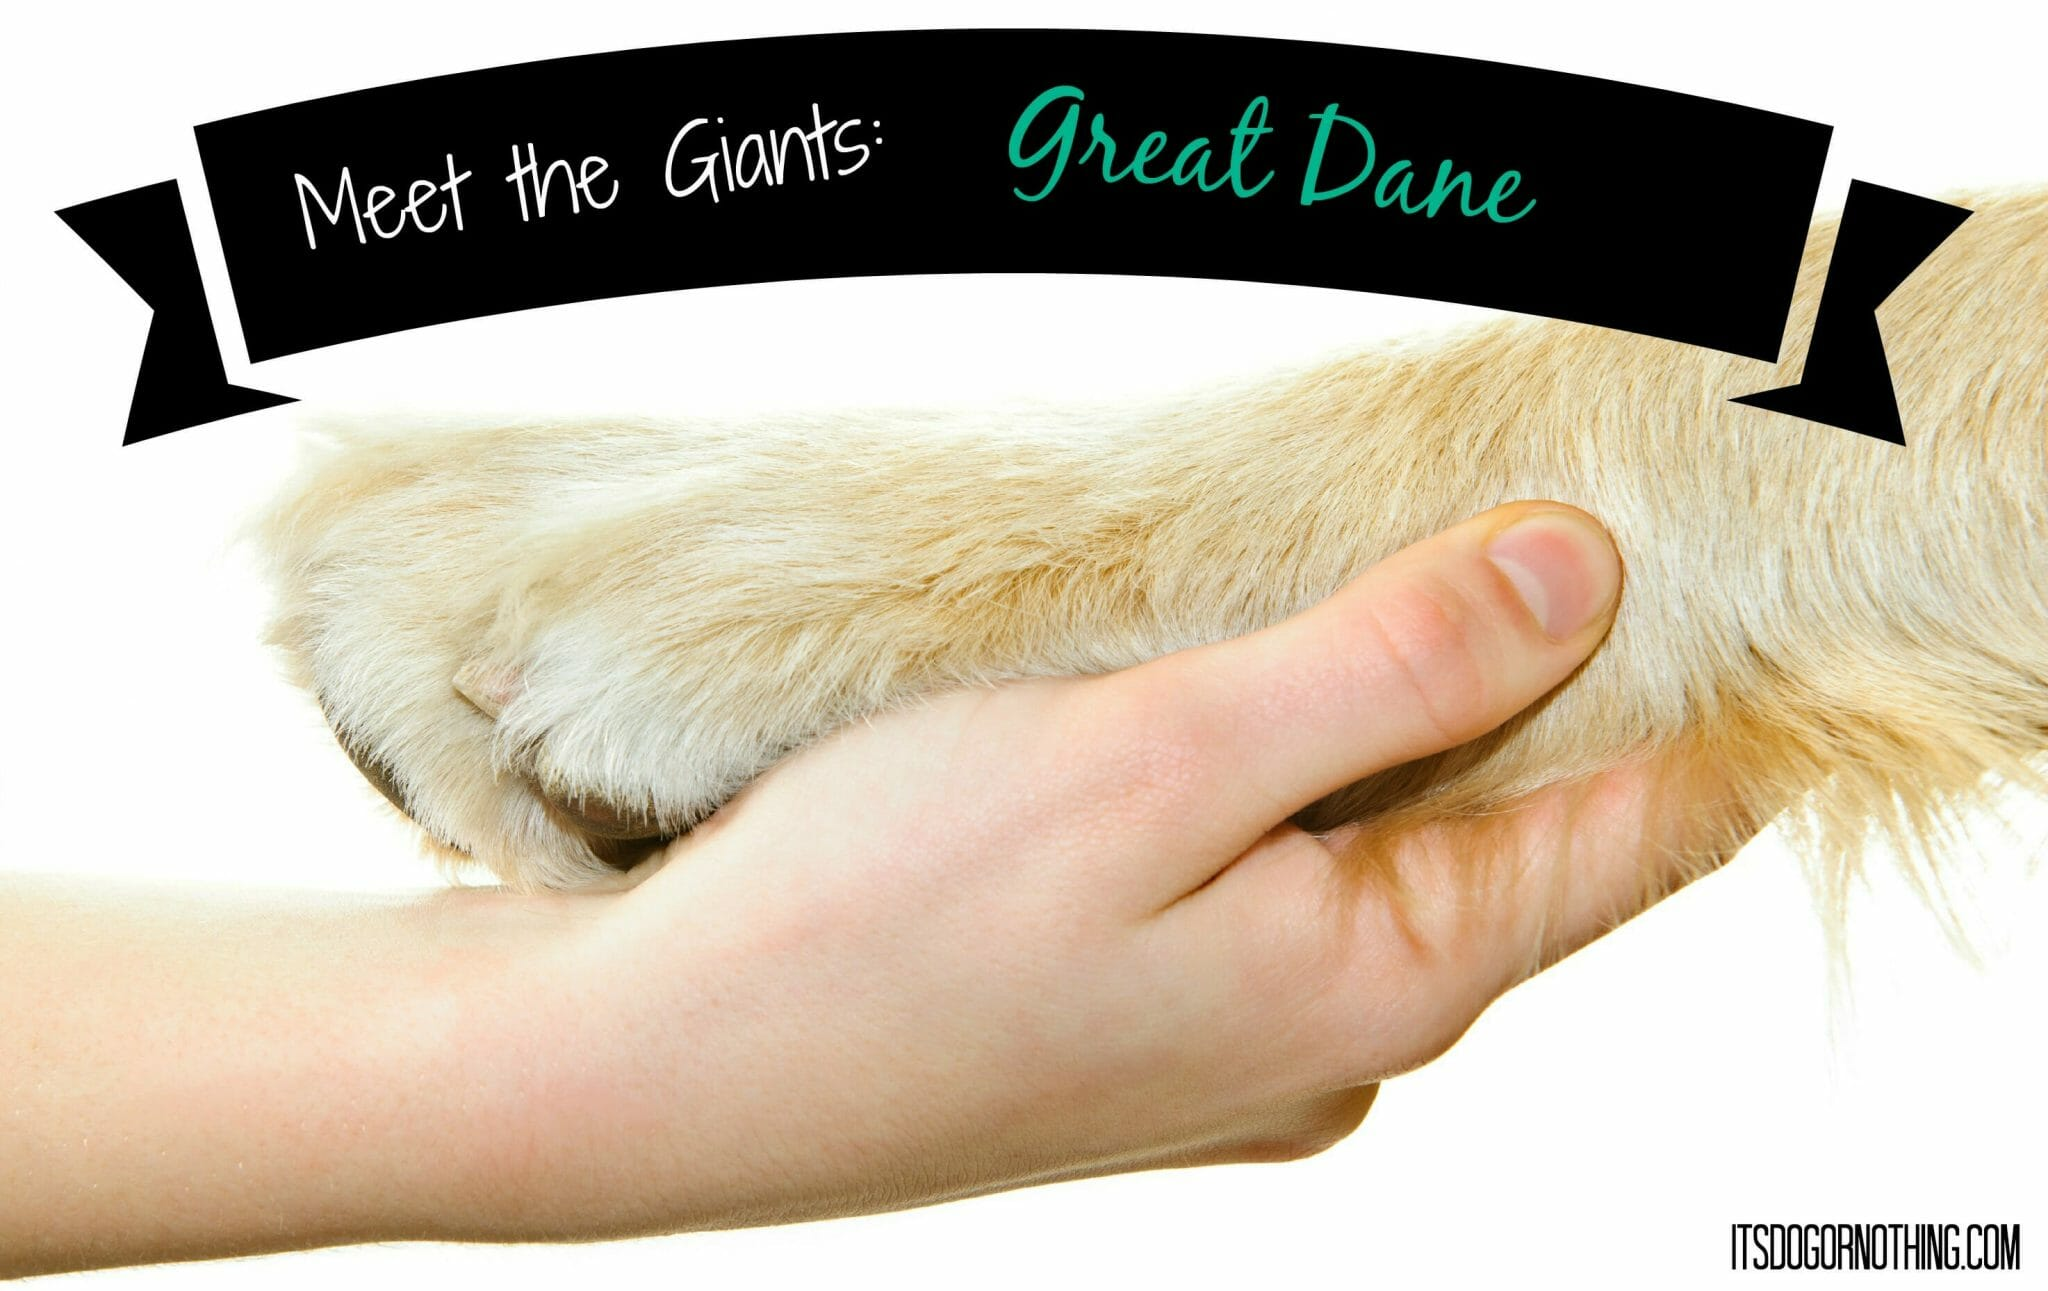 Meet the Giants: Great Dane